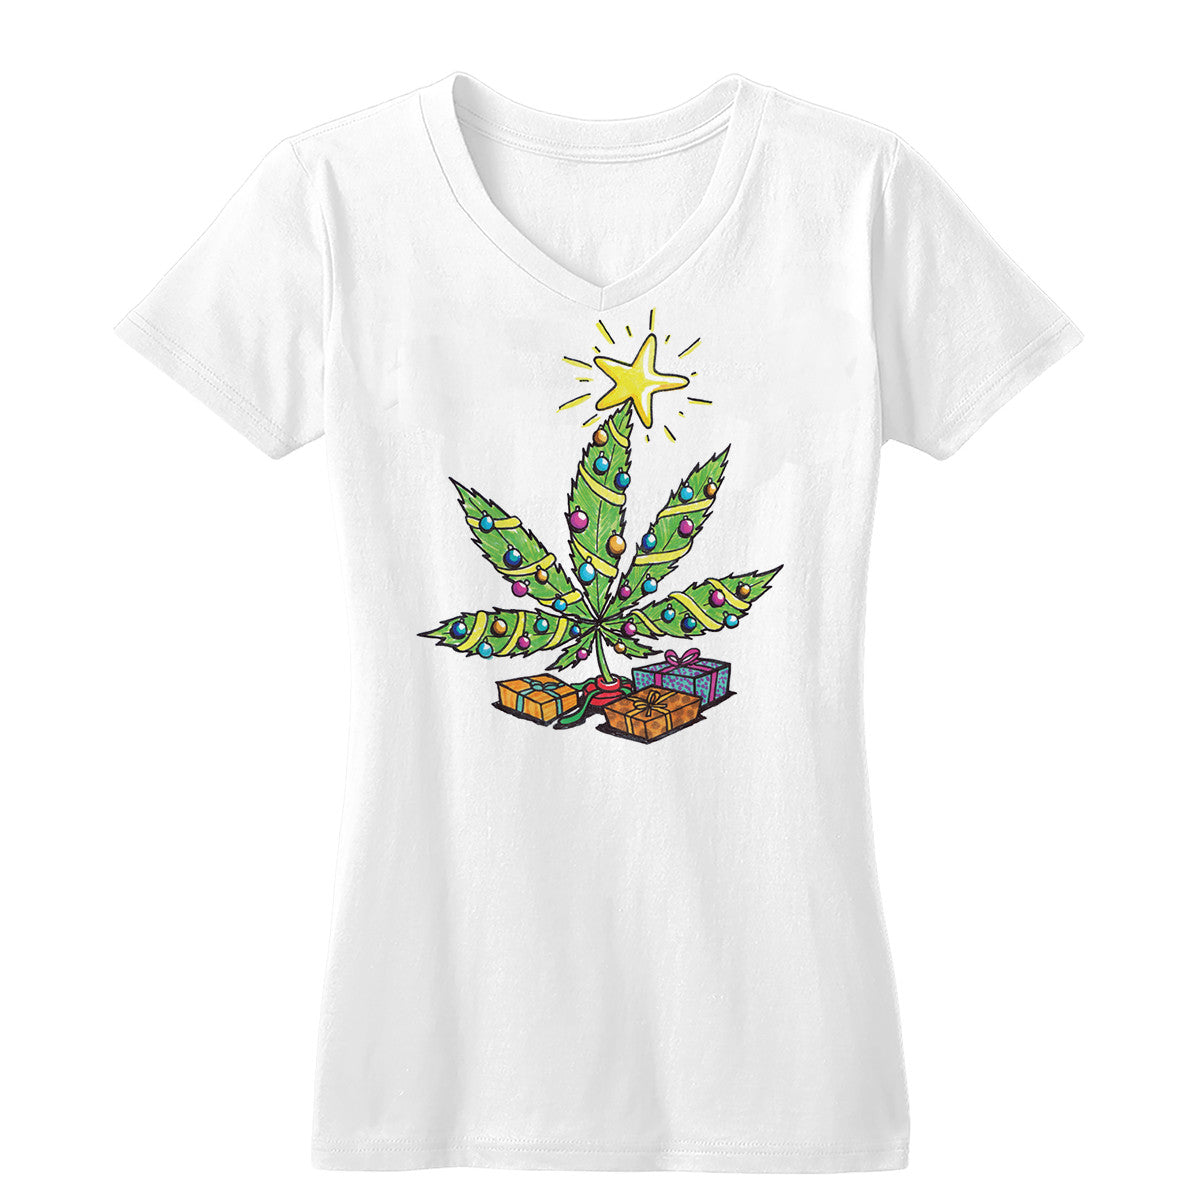 Tree Trim Women's Tee